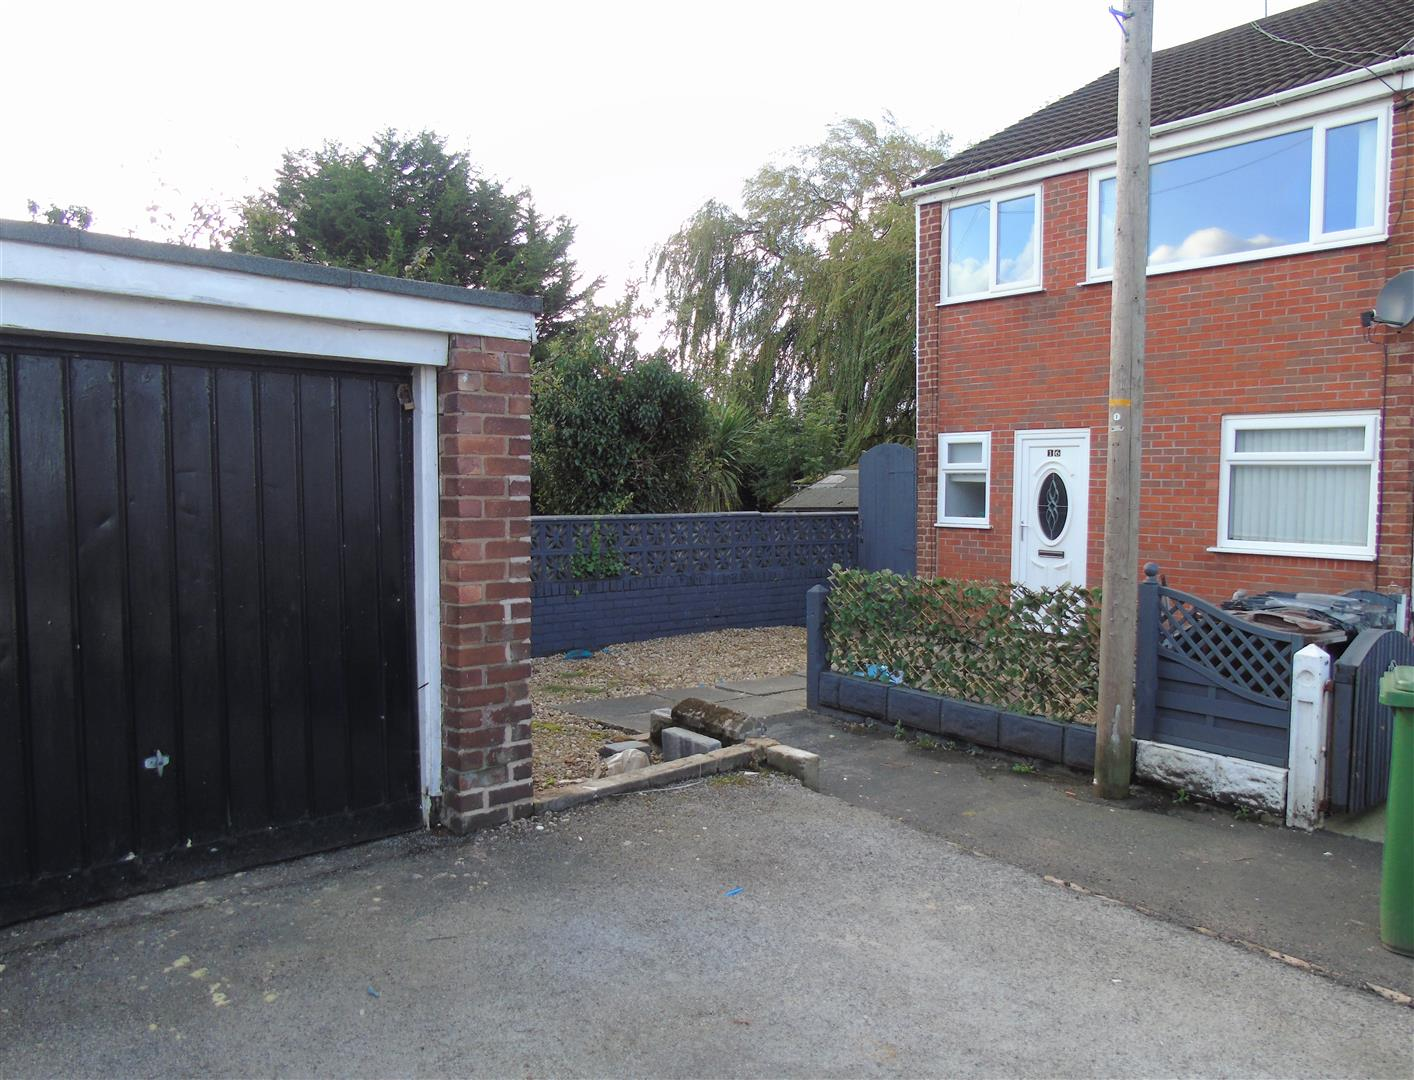 3 Bedrooms, House - End Town House, Debra Close, Melling, Liverpool